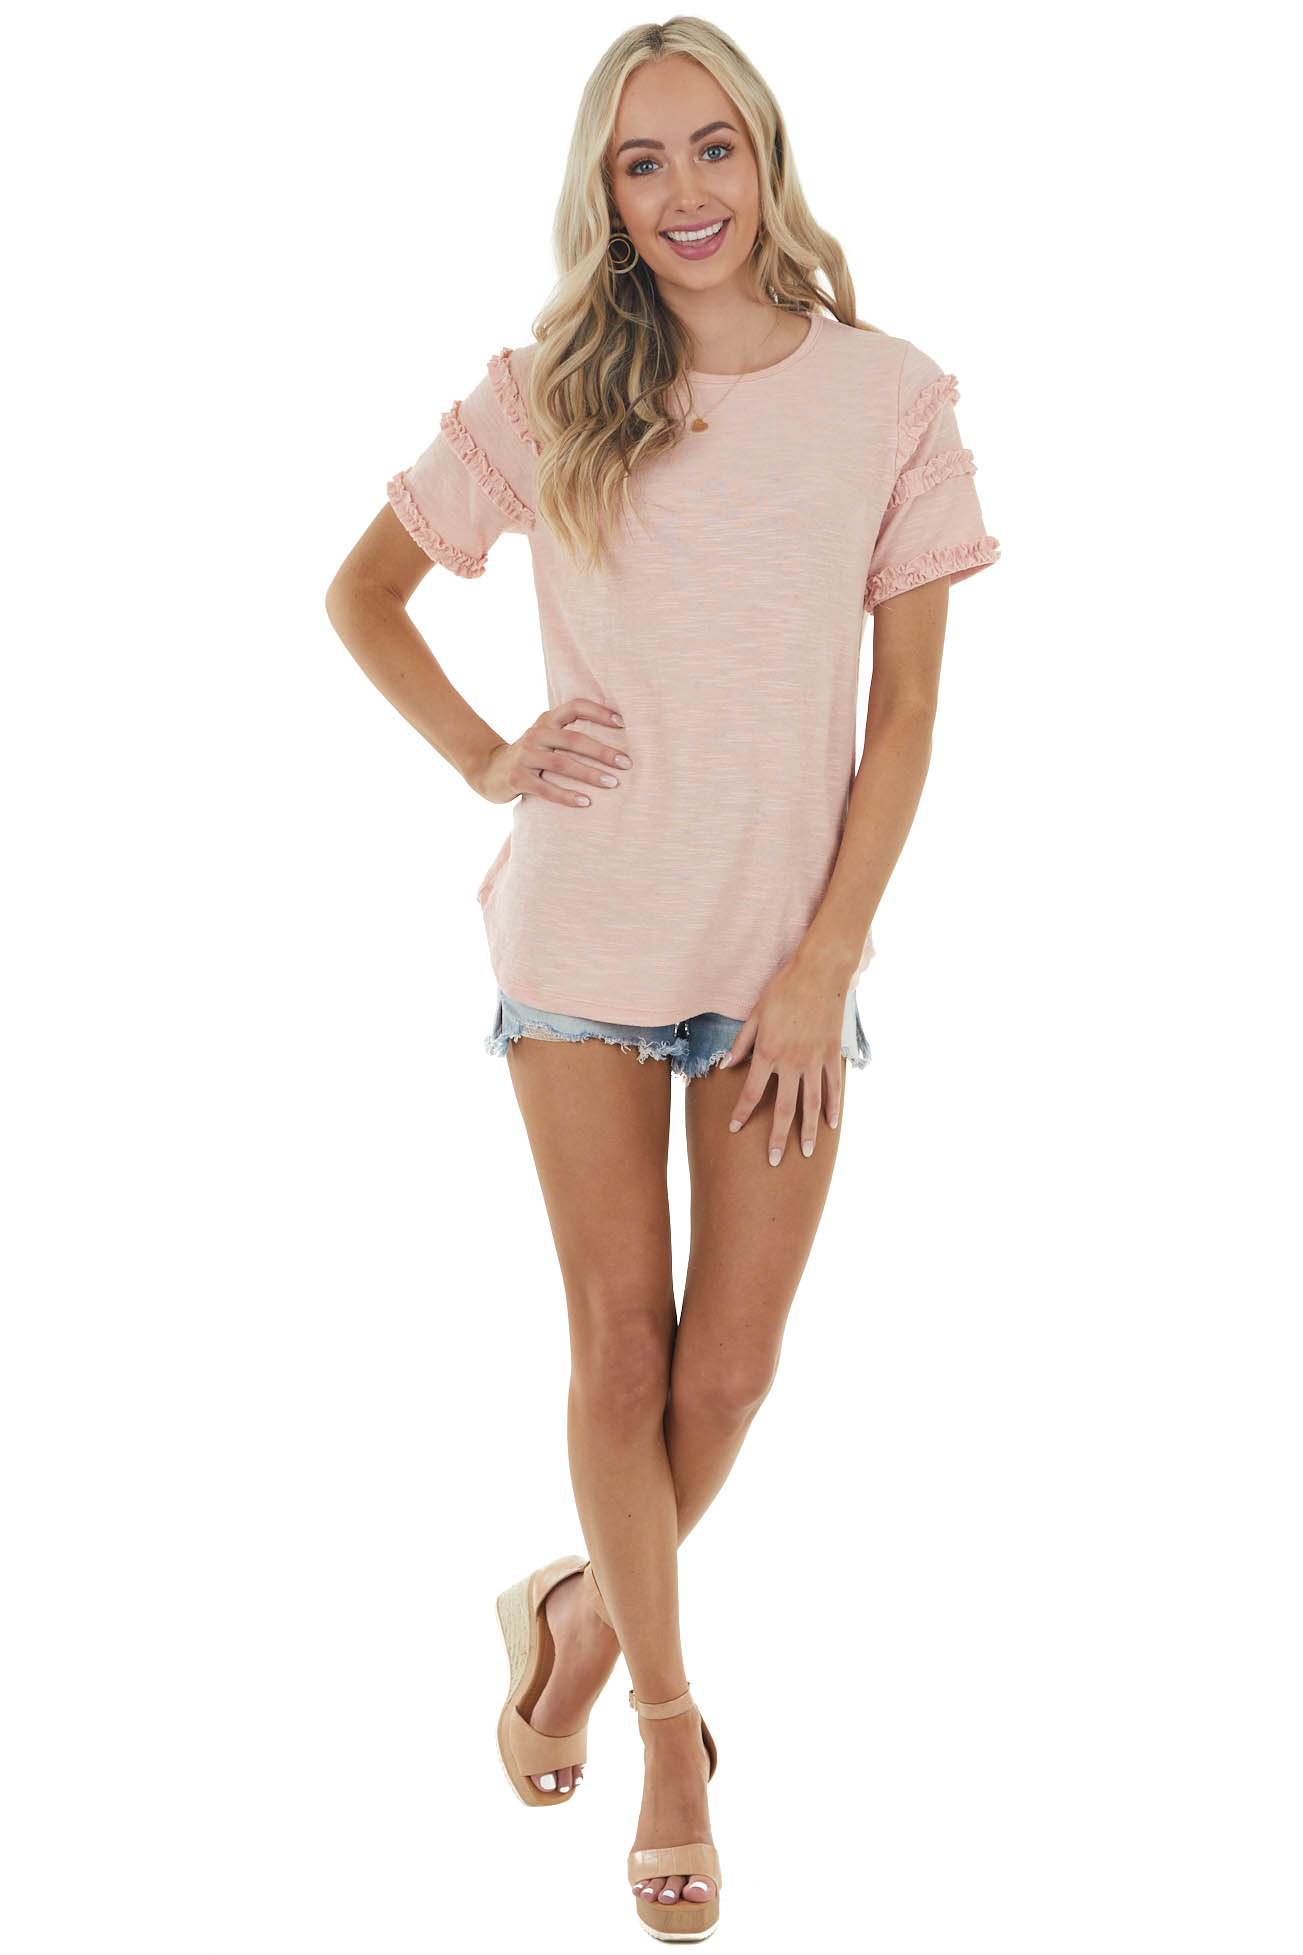 Dusty Blush Textured Short Sleeve Top with Ruffle Details